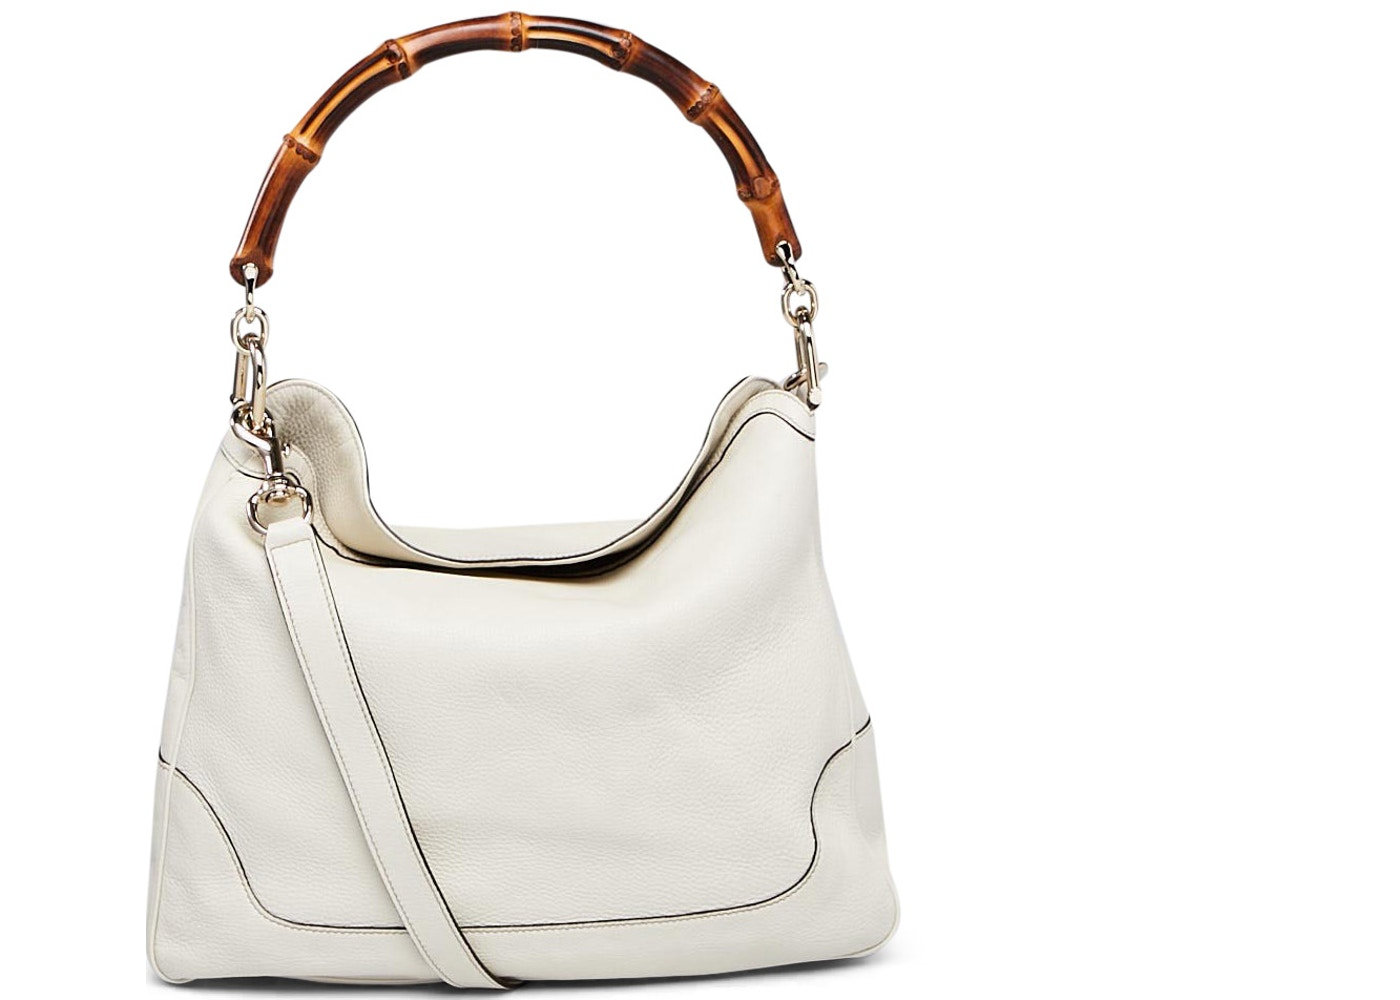 259eed24c2062 Gucci Diana Shoulder Bag Bamboo Handle White. Bamboo Handle White